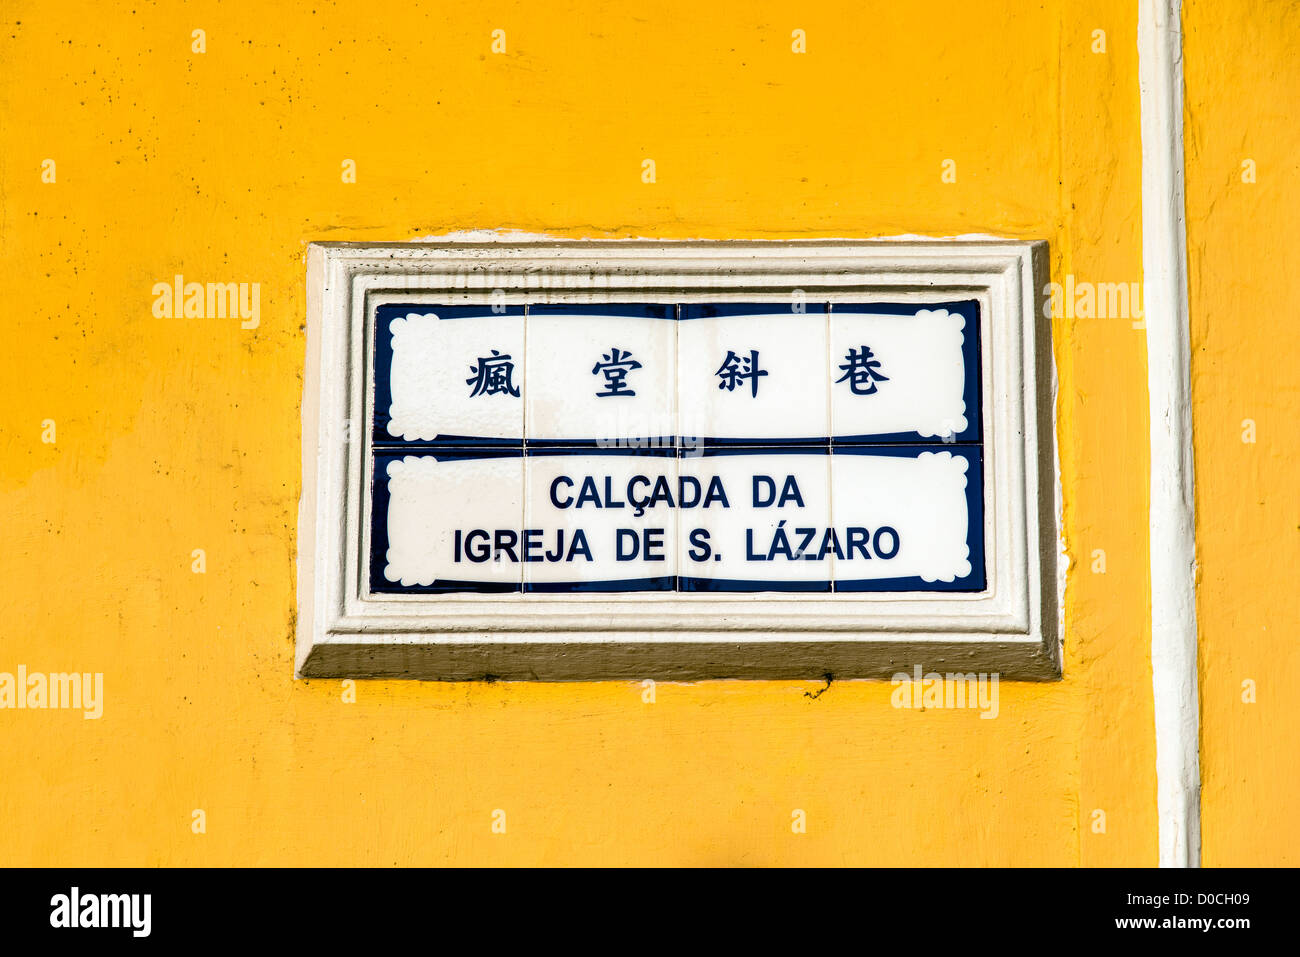 Bilingual street sign in Portuguese and Chinese, Macau, China - Stock Image